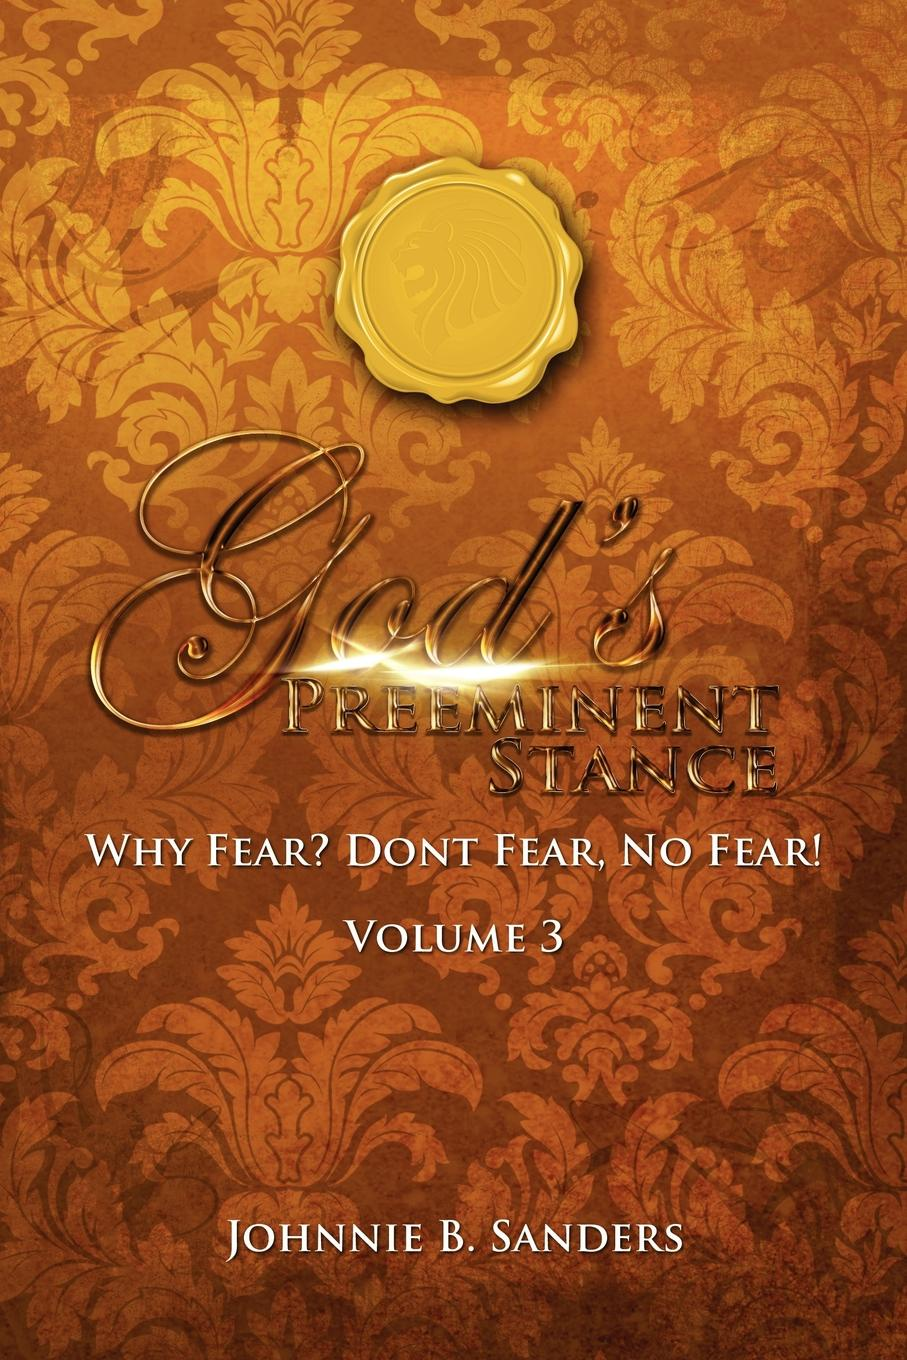 Фото - Johnnie B Sanders Gods. Preeminent Stance Vol 3 amity shlaes it s not as bad as you think why capitalism trumps fear and the economy will thrive